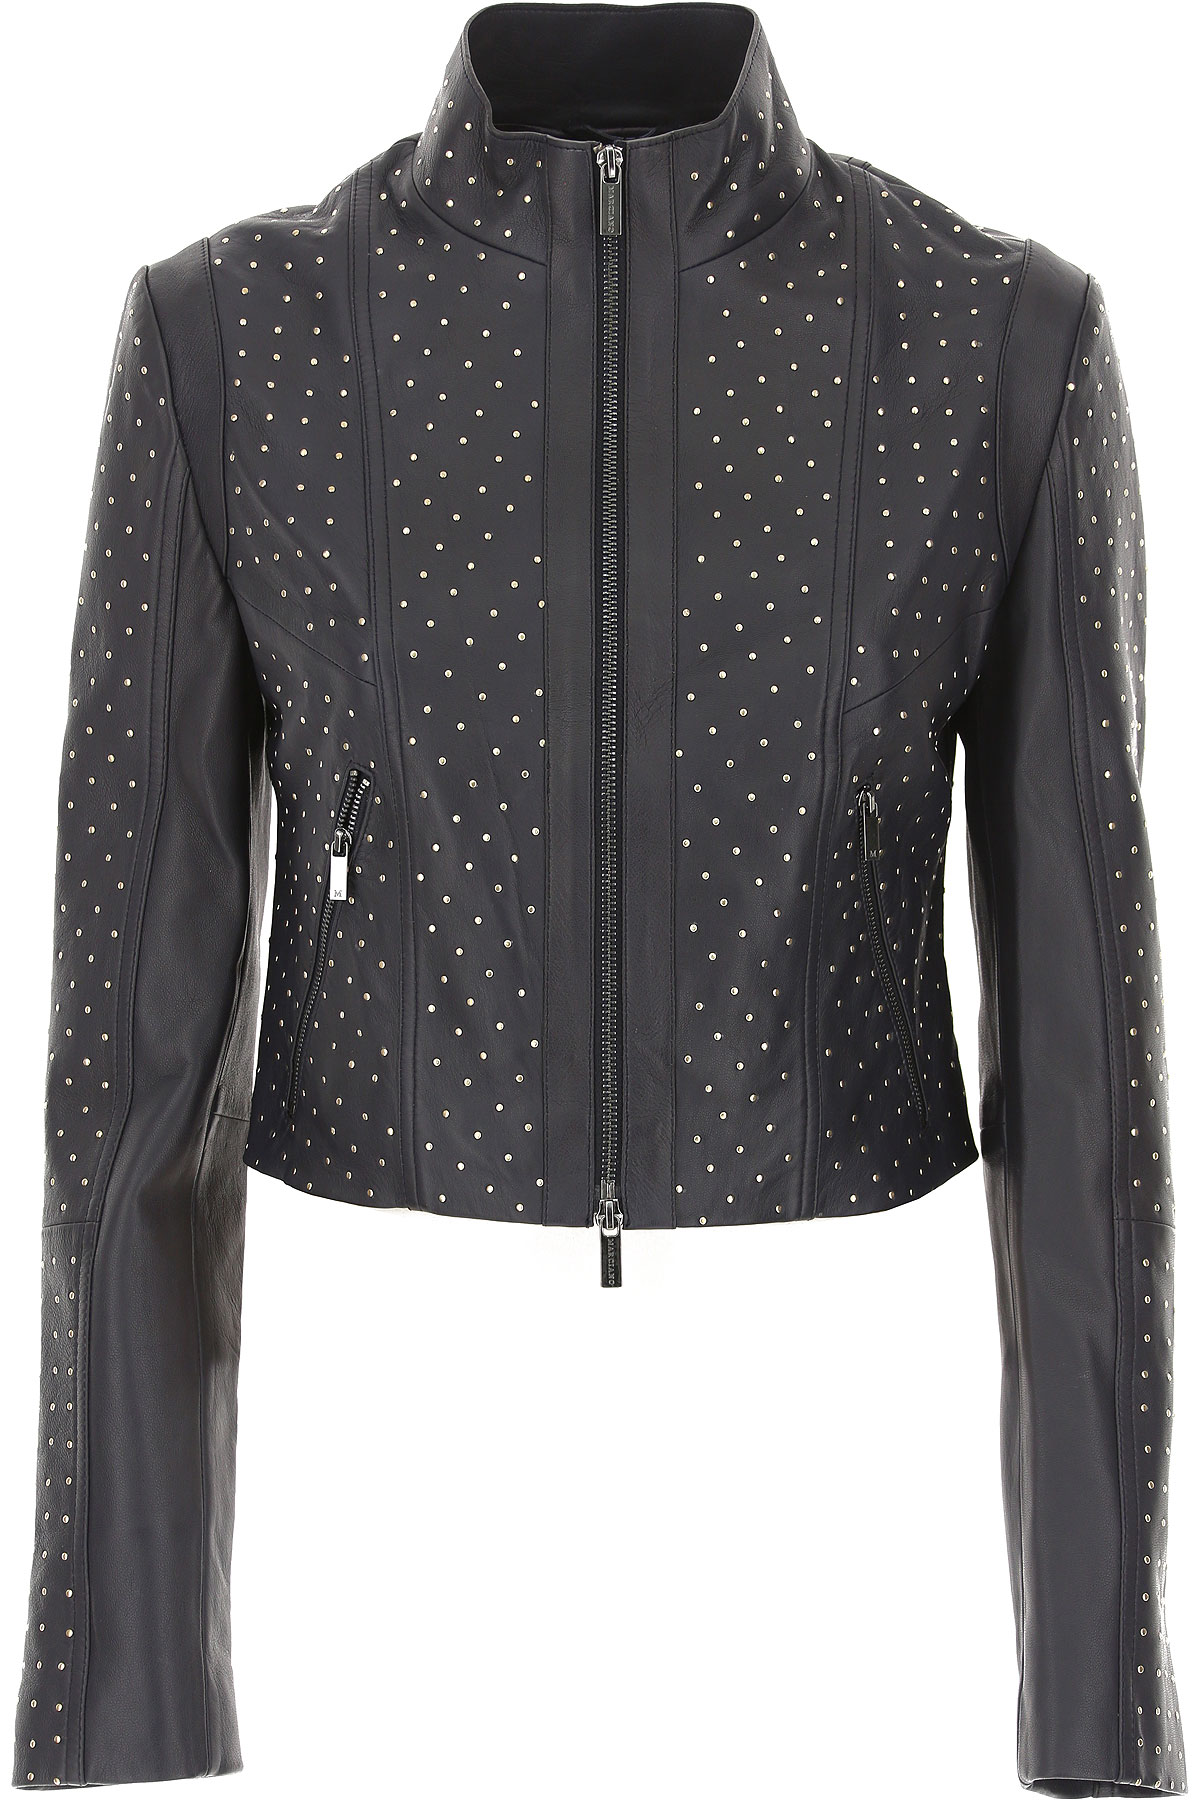 Image of Guess Leather Jacket for Women, Black, Leather, 2017, 4 6 8